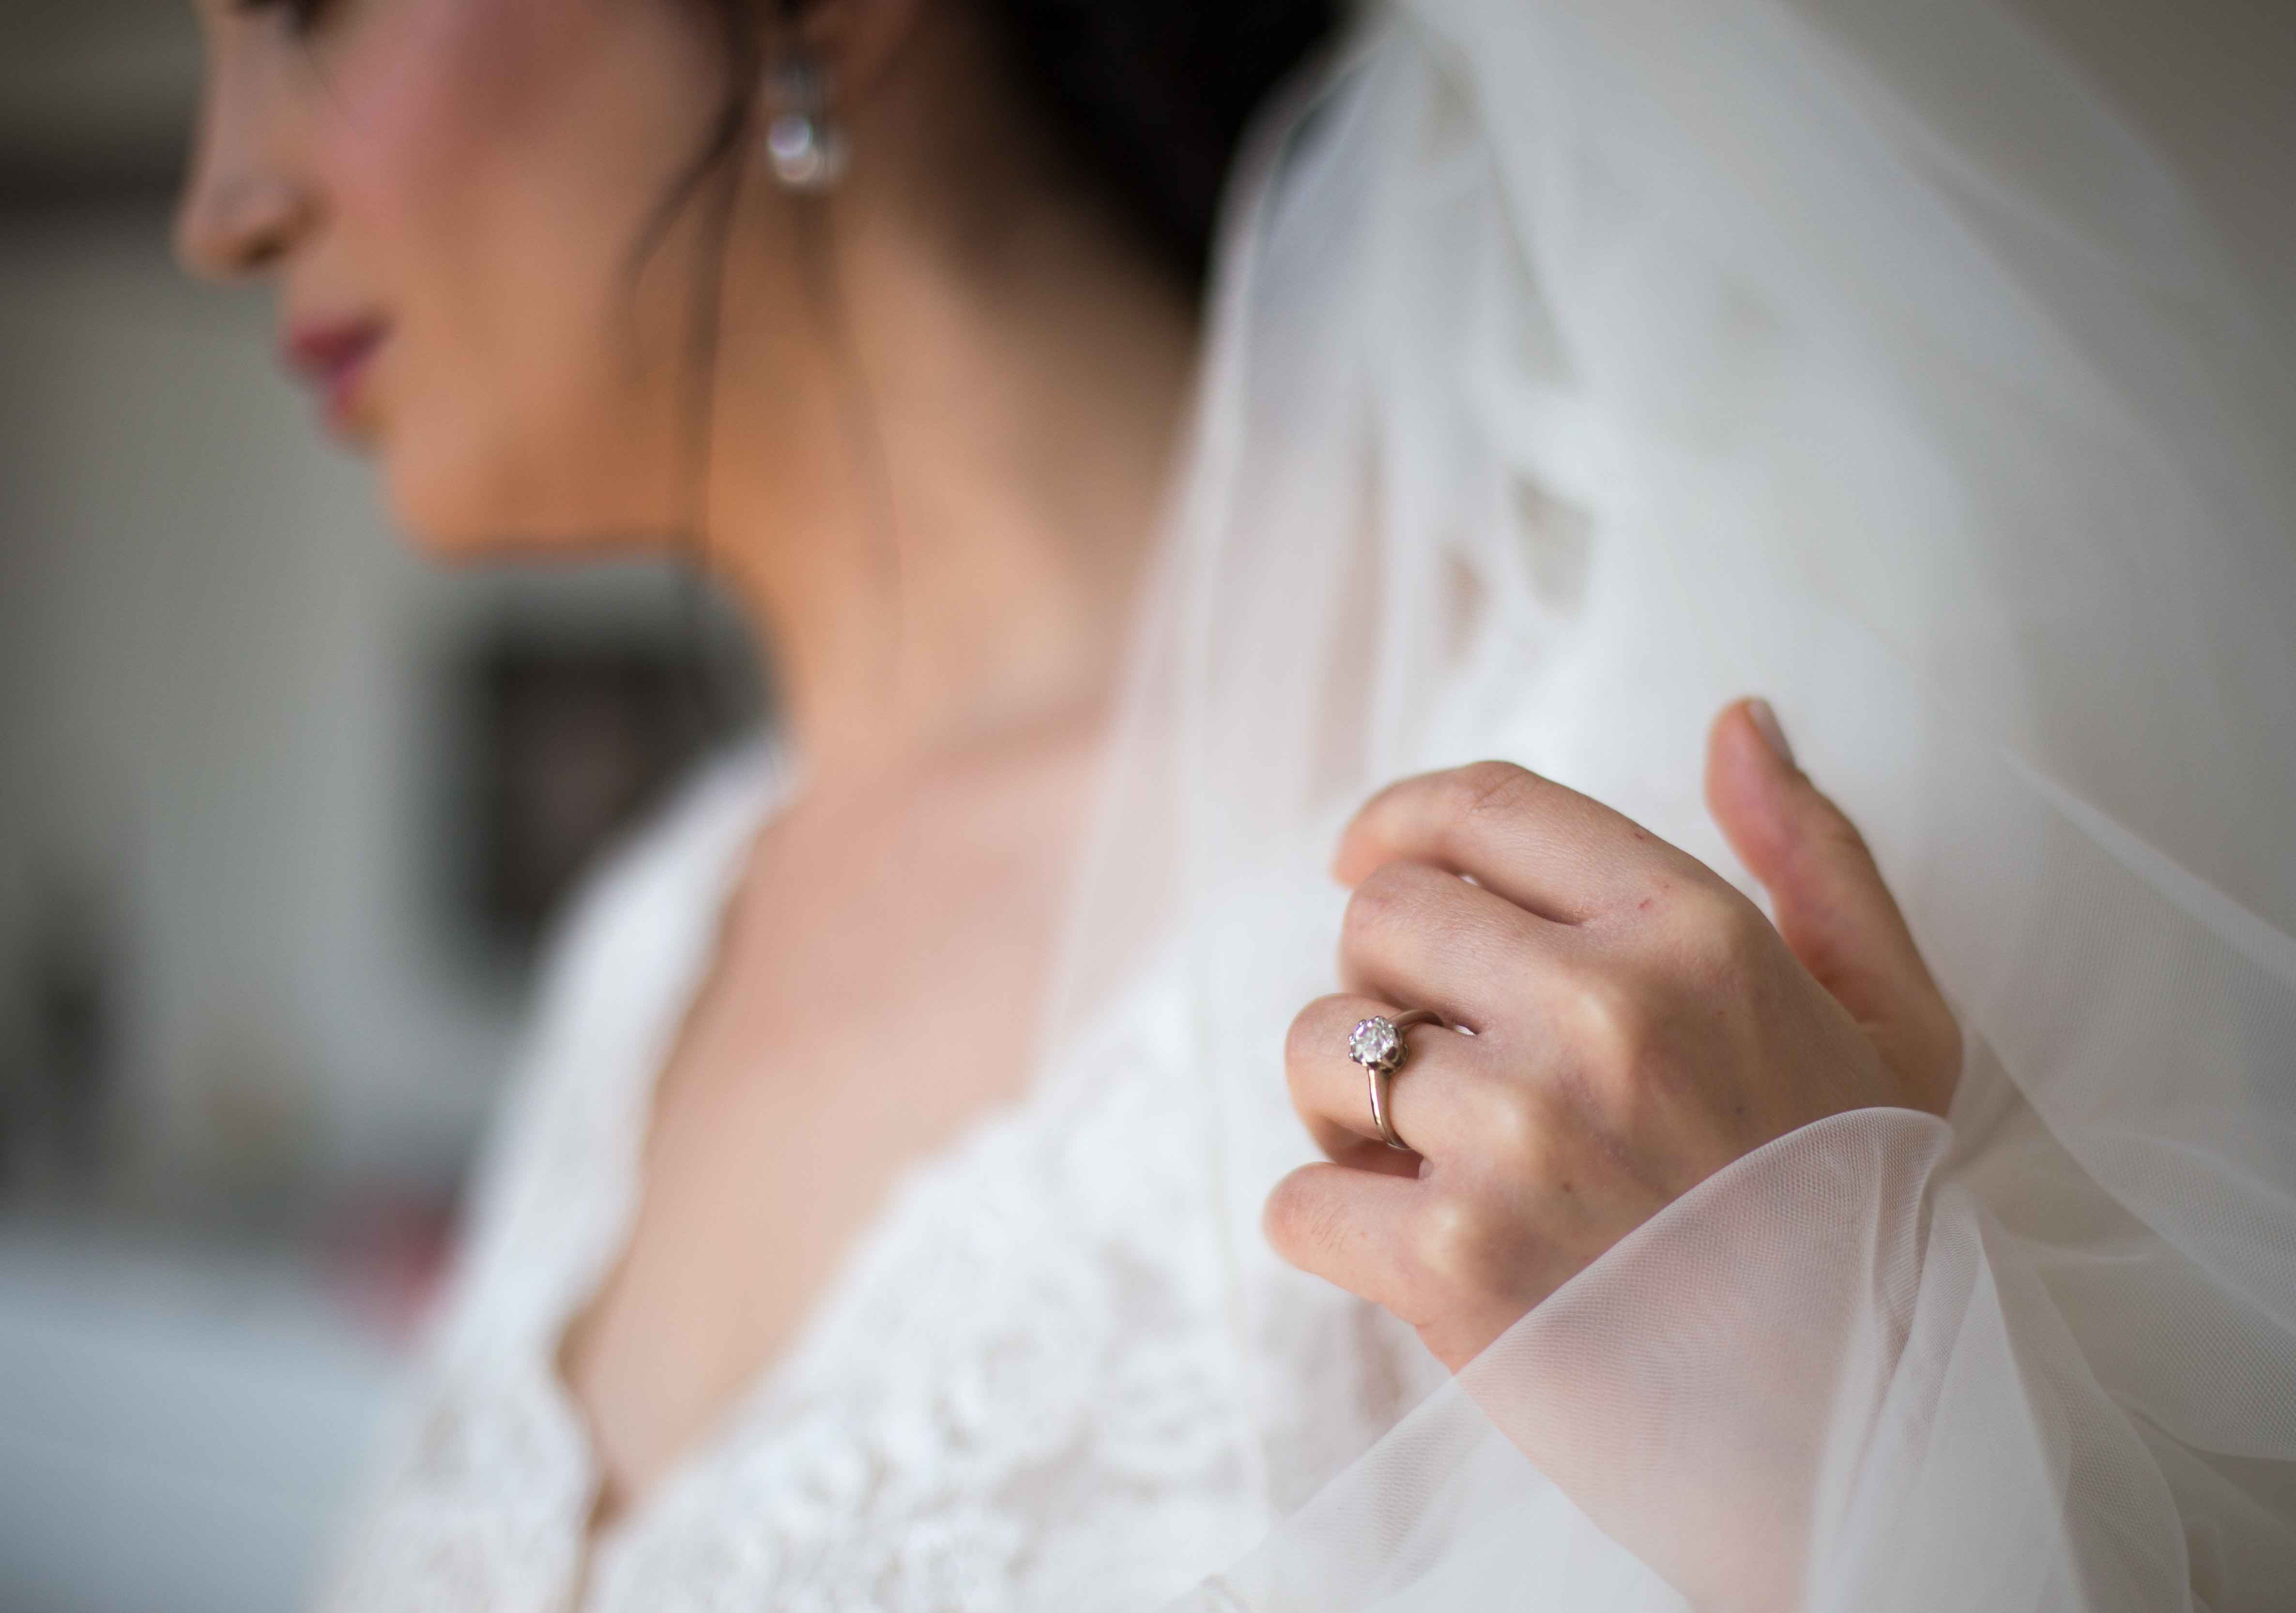 Bride wearing an engagement ring